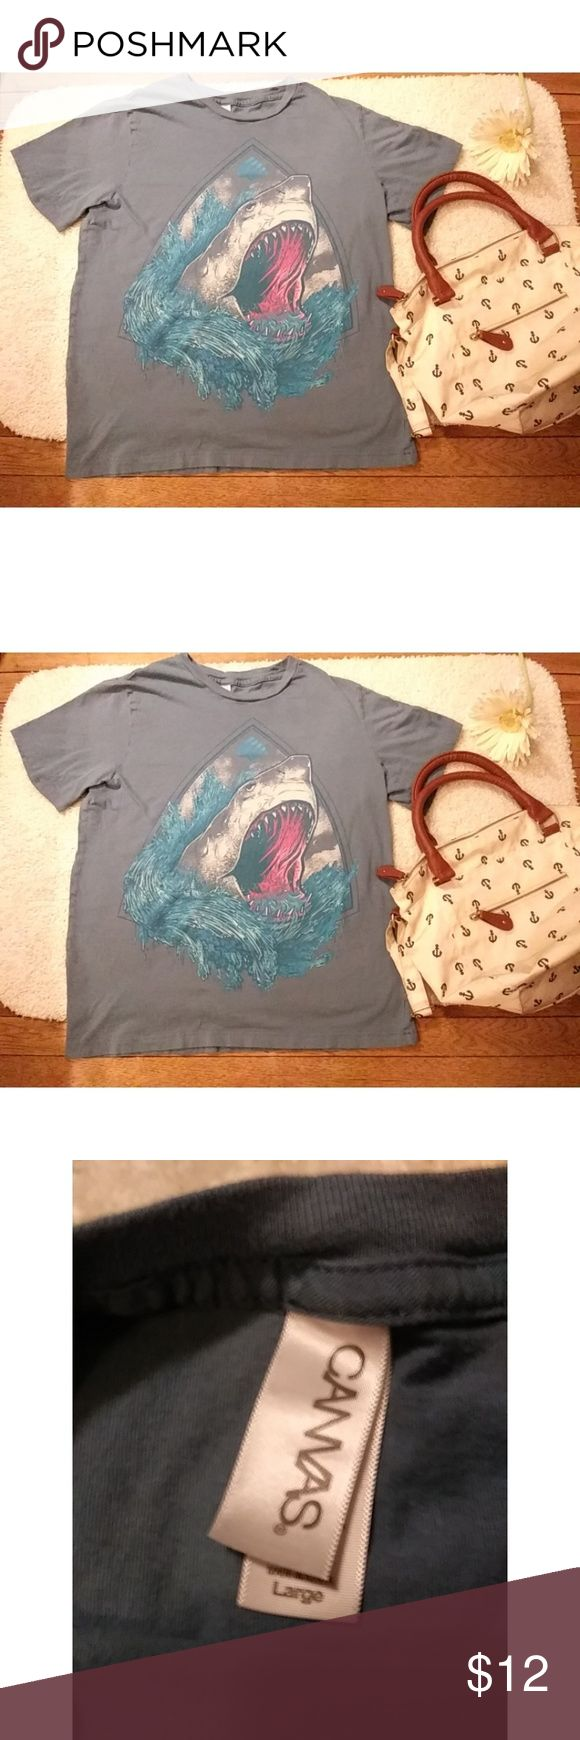 """Shroomtech Sport Jaws """"Shark week"""" t-shirt This is a unisex Shroomtech Sport t-shirt with a cool, fun picture of a shark. Great photo on t-shirt! Size: Large Underarms: 37"""" Length: 21.5"""" shroomtech sport Tops Tees - Short Sleeve"""